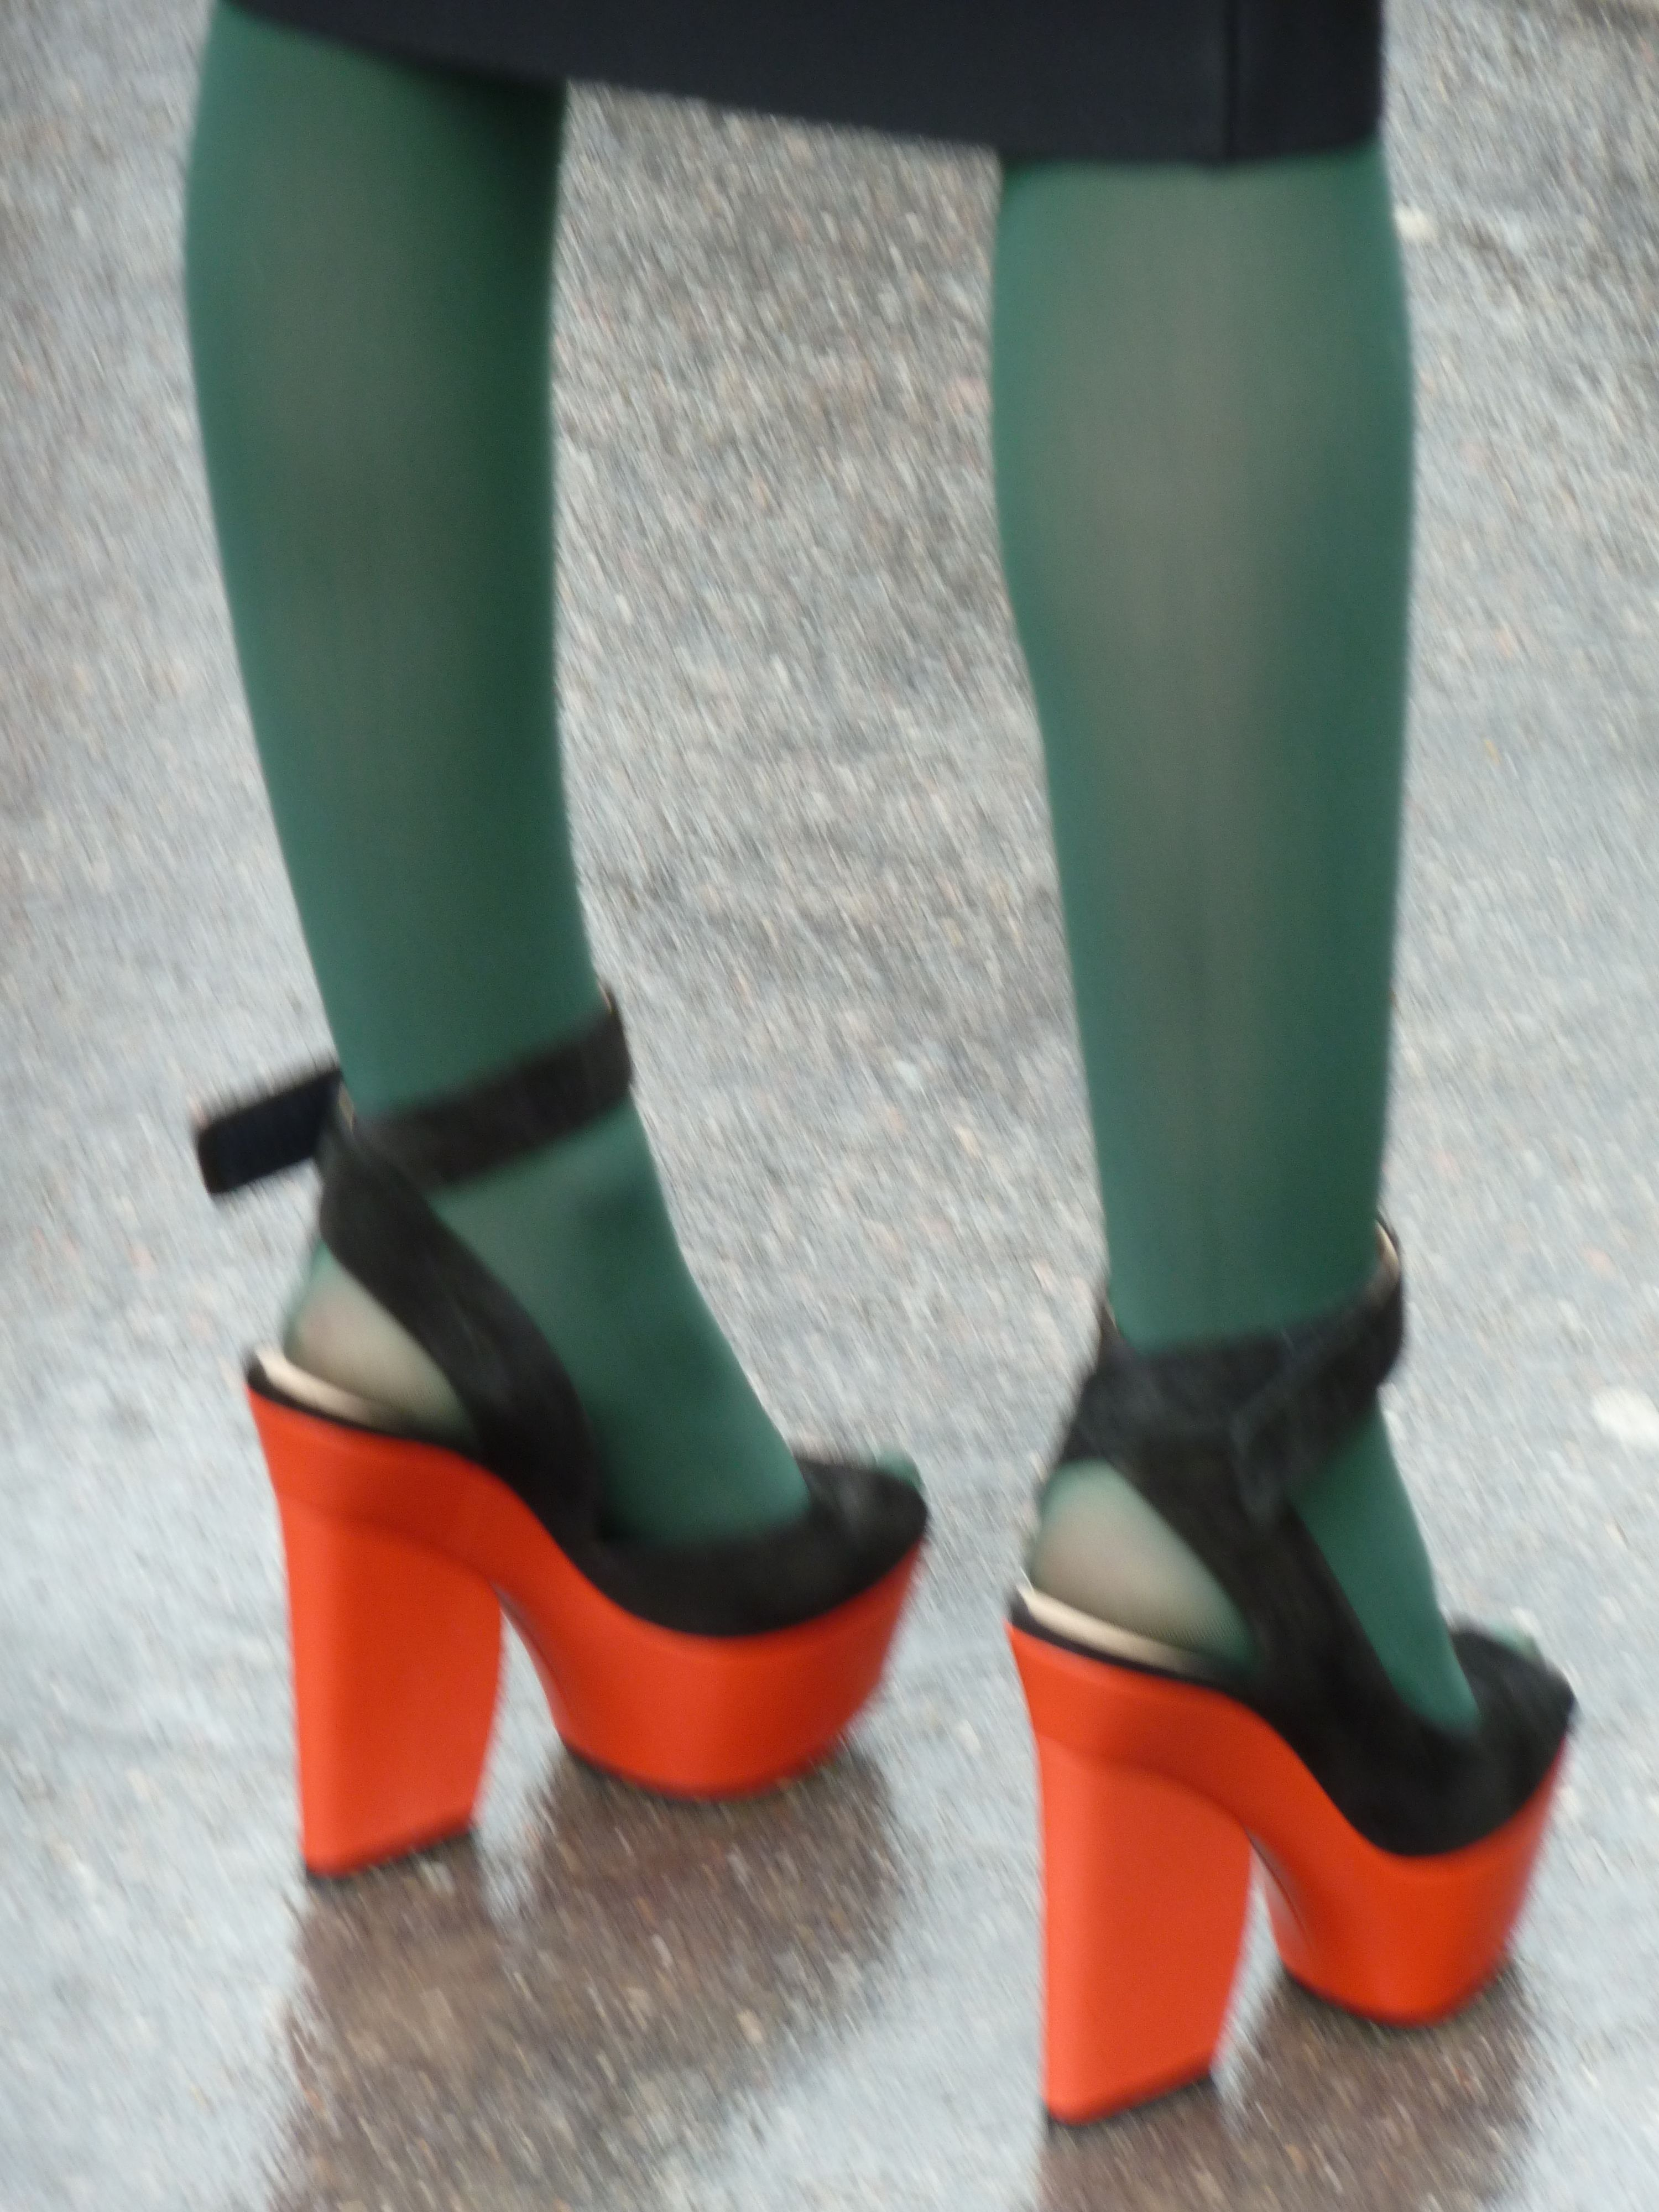 fahsion green tights  black and orange shoes